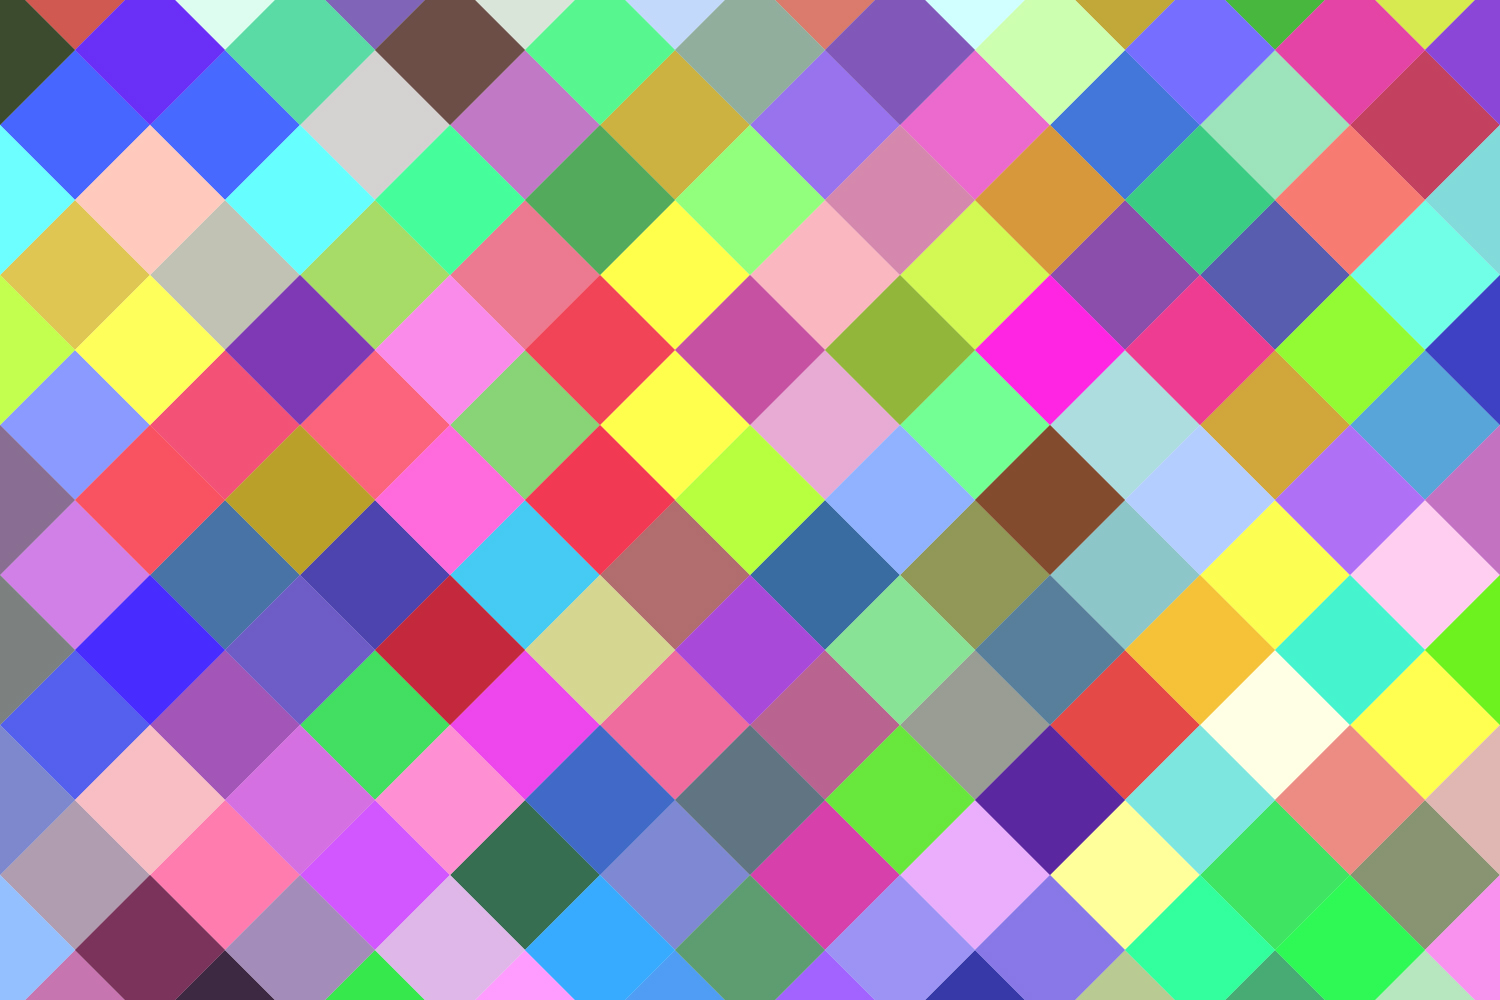 24 Multicolored Square Patterns (AI, EPS, JPG 5000x5000) example image 2